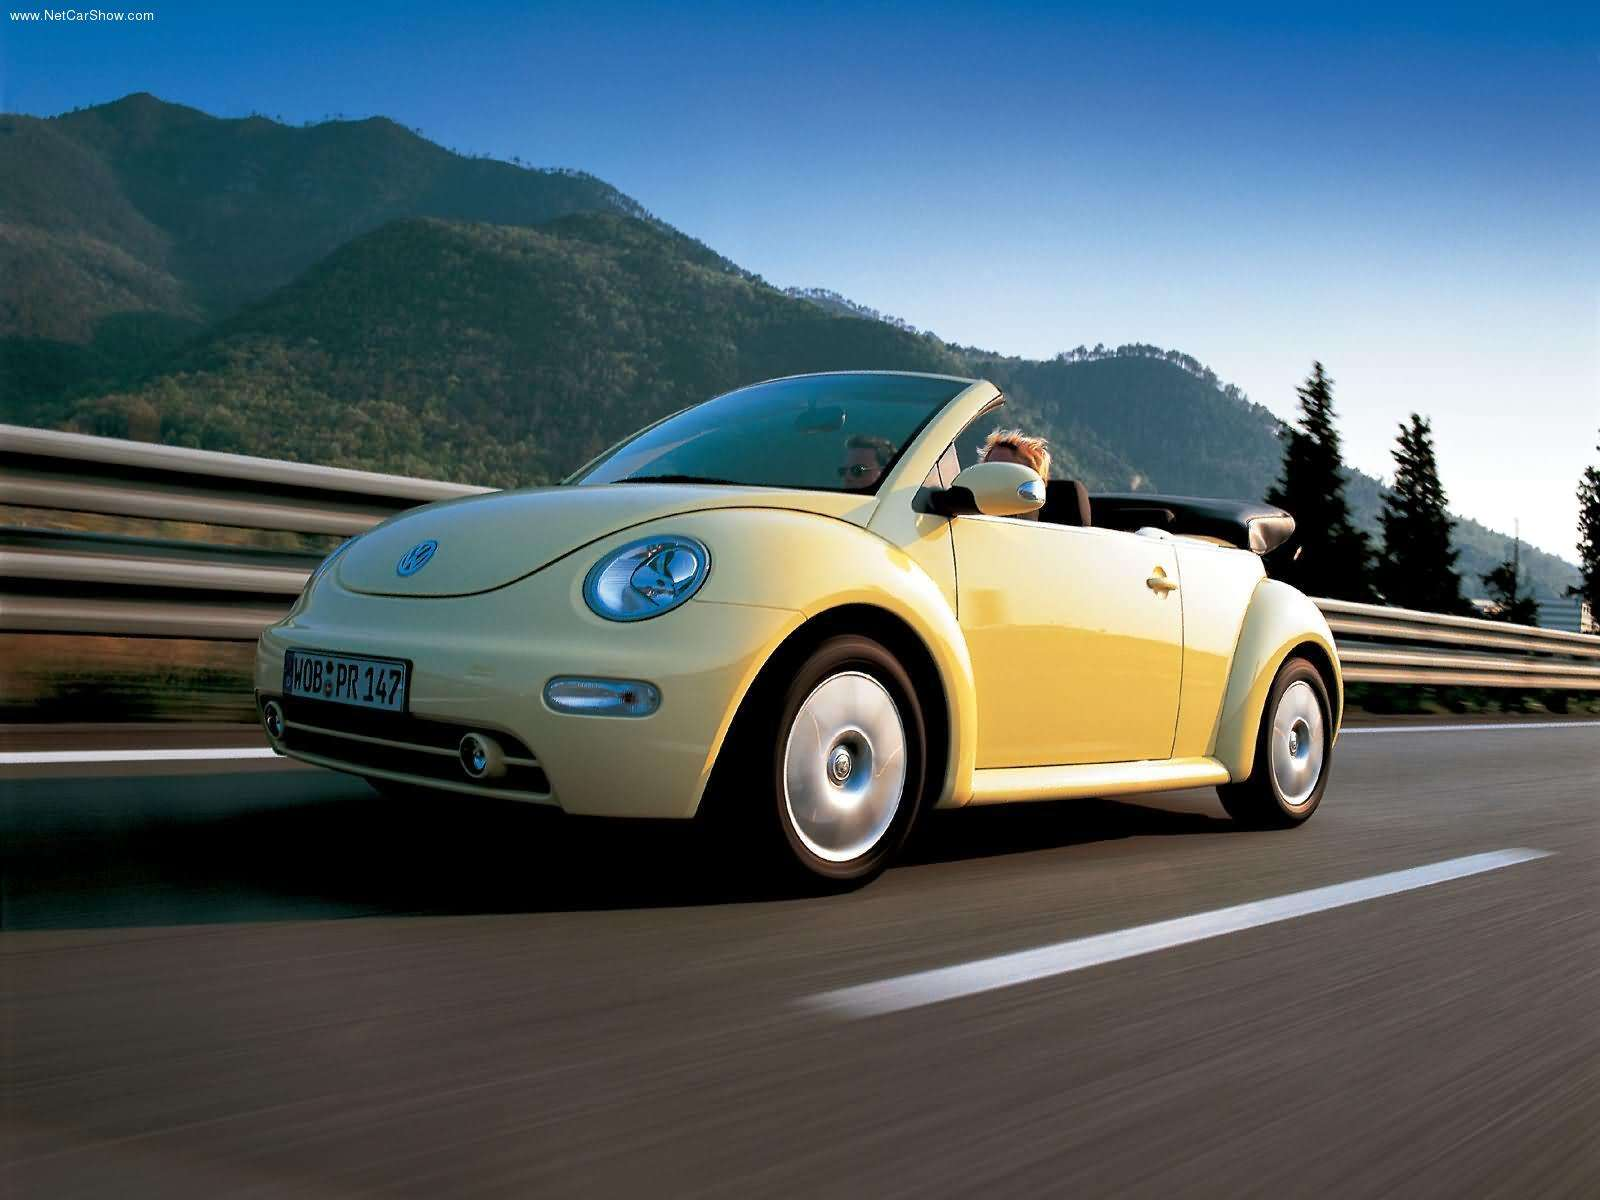 2019 Volkswagen New Beetle USA Version photo - 1